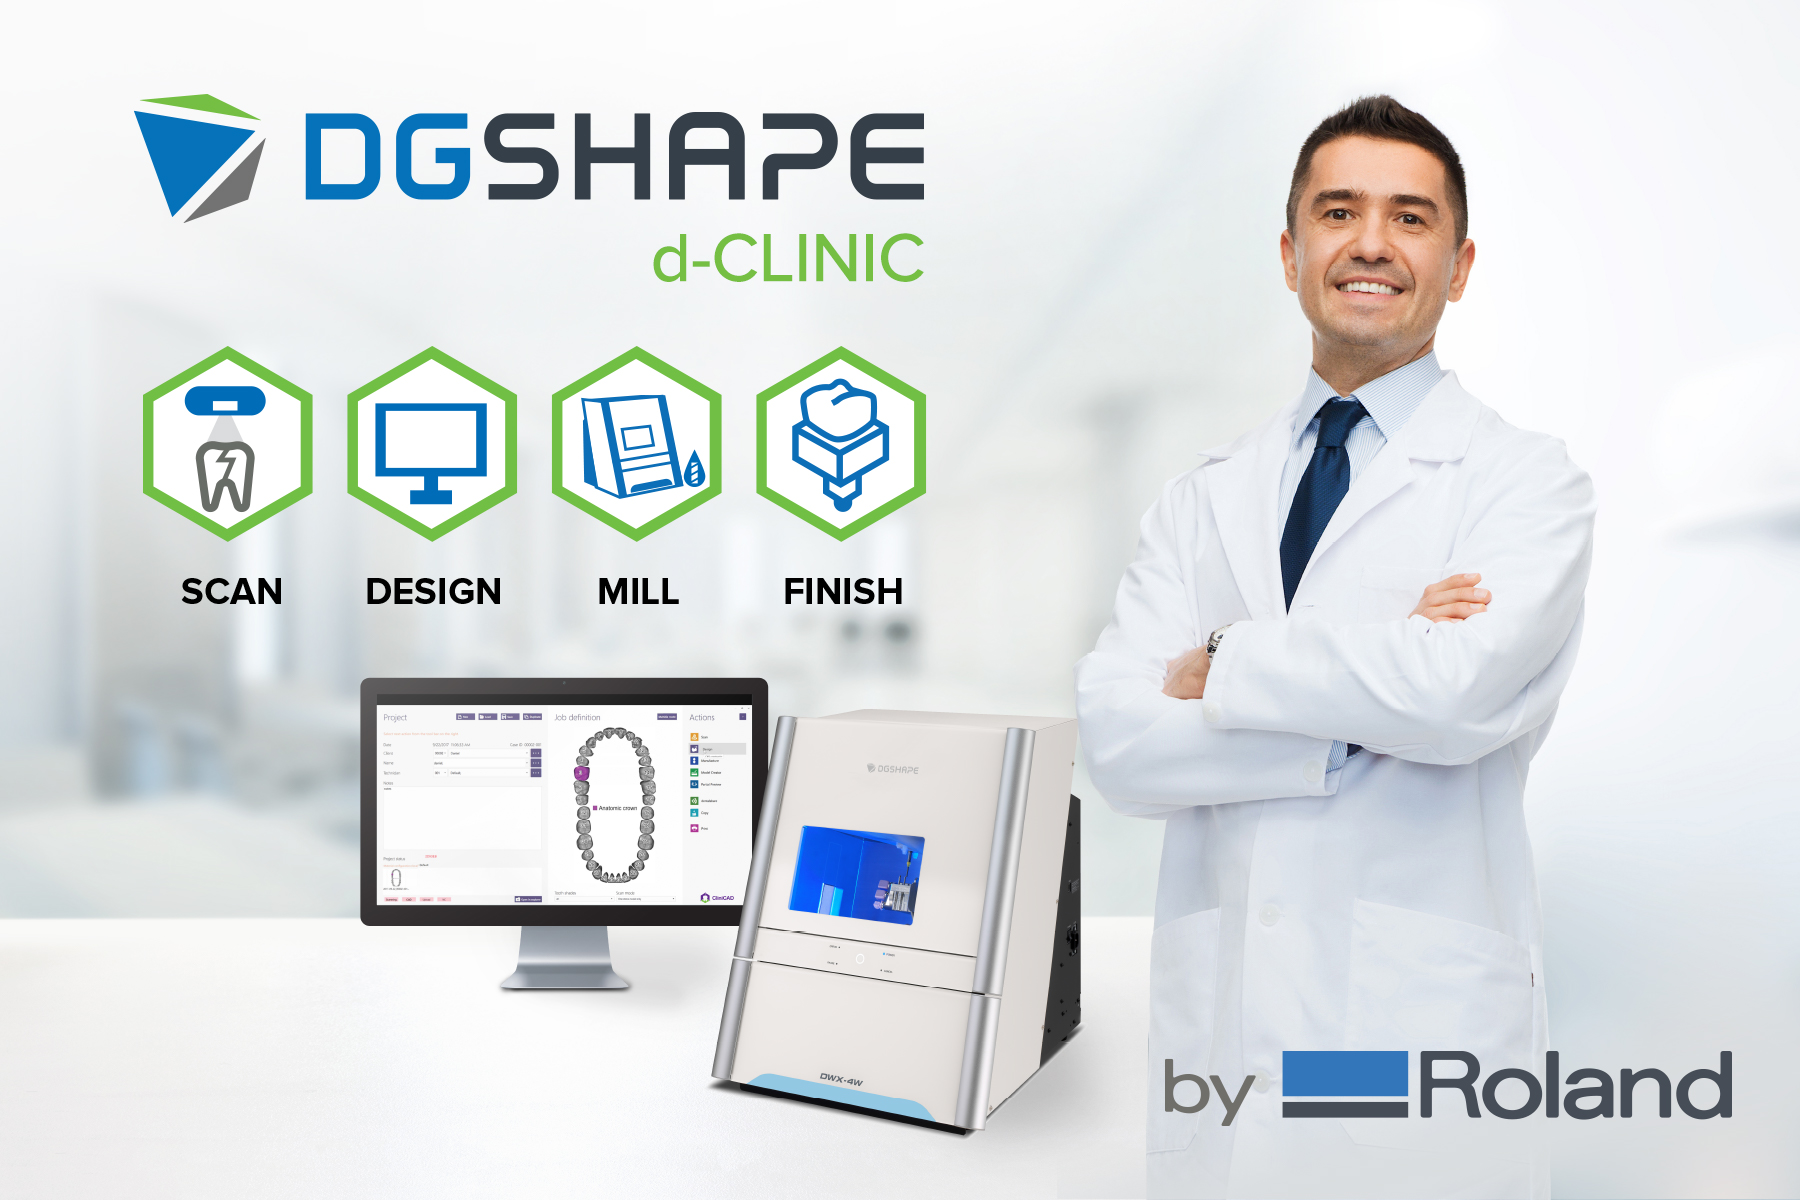 Roland DGA has introduced d-CLINIC -- a new open architecture in-clinic CAD/CAM solution for dentists.